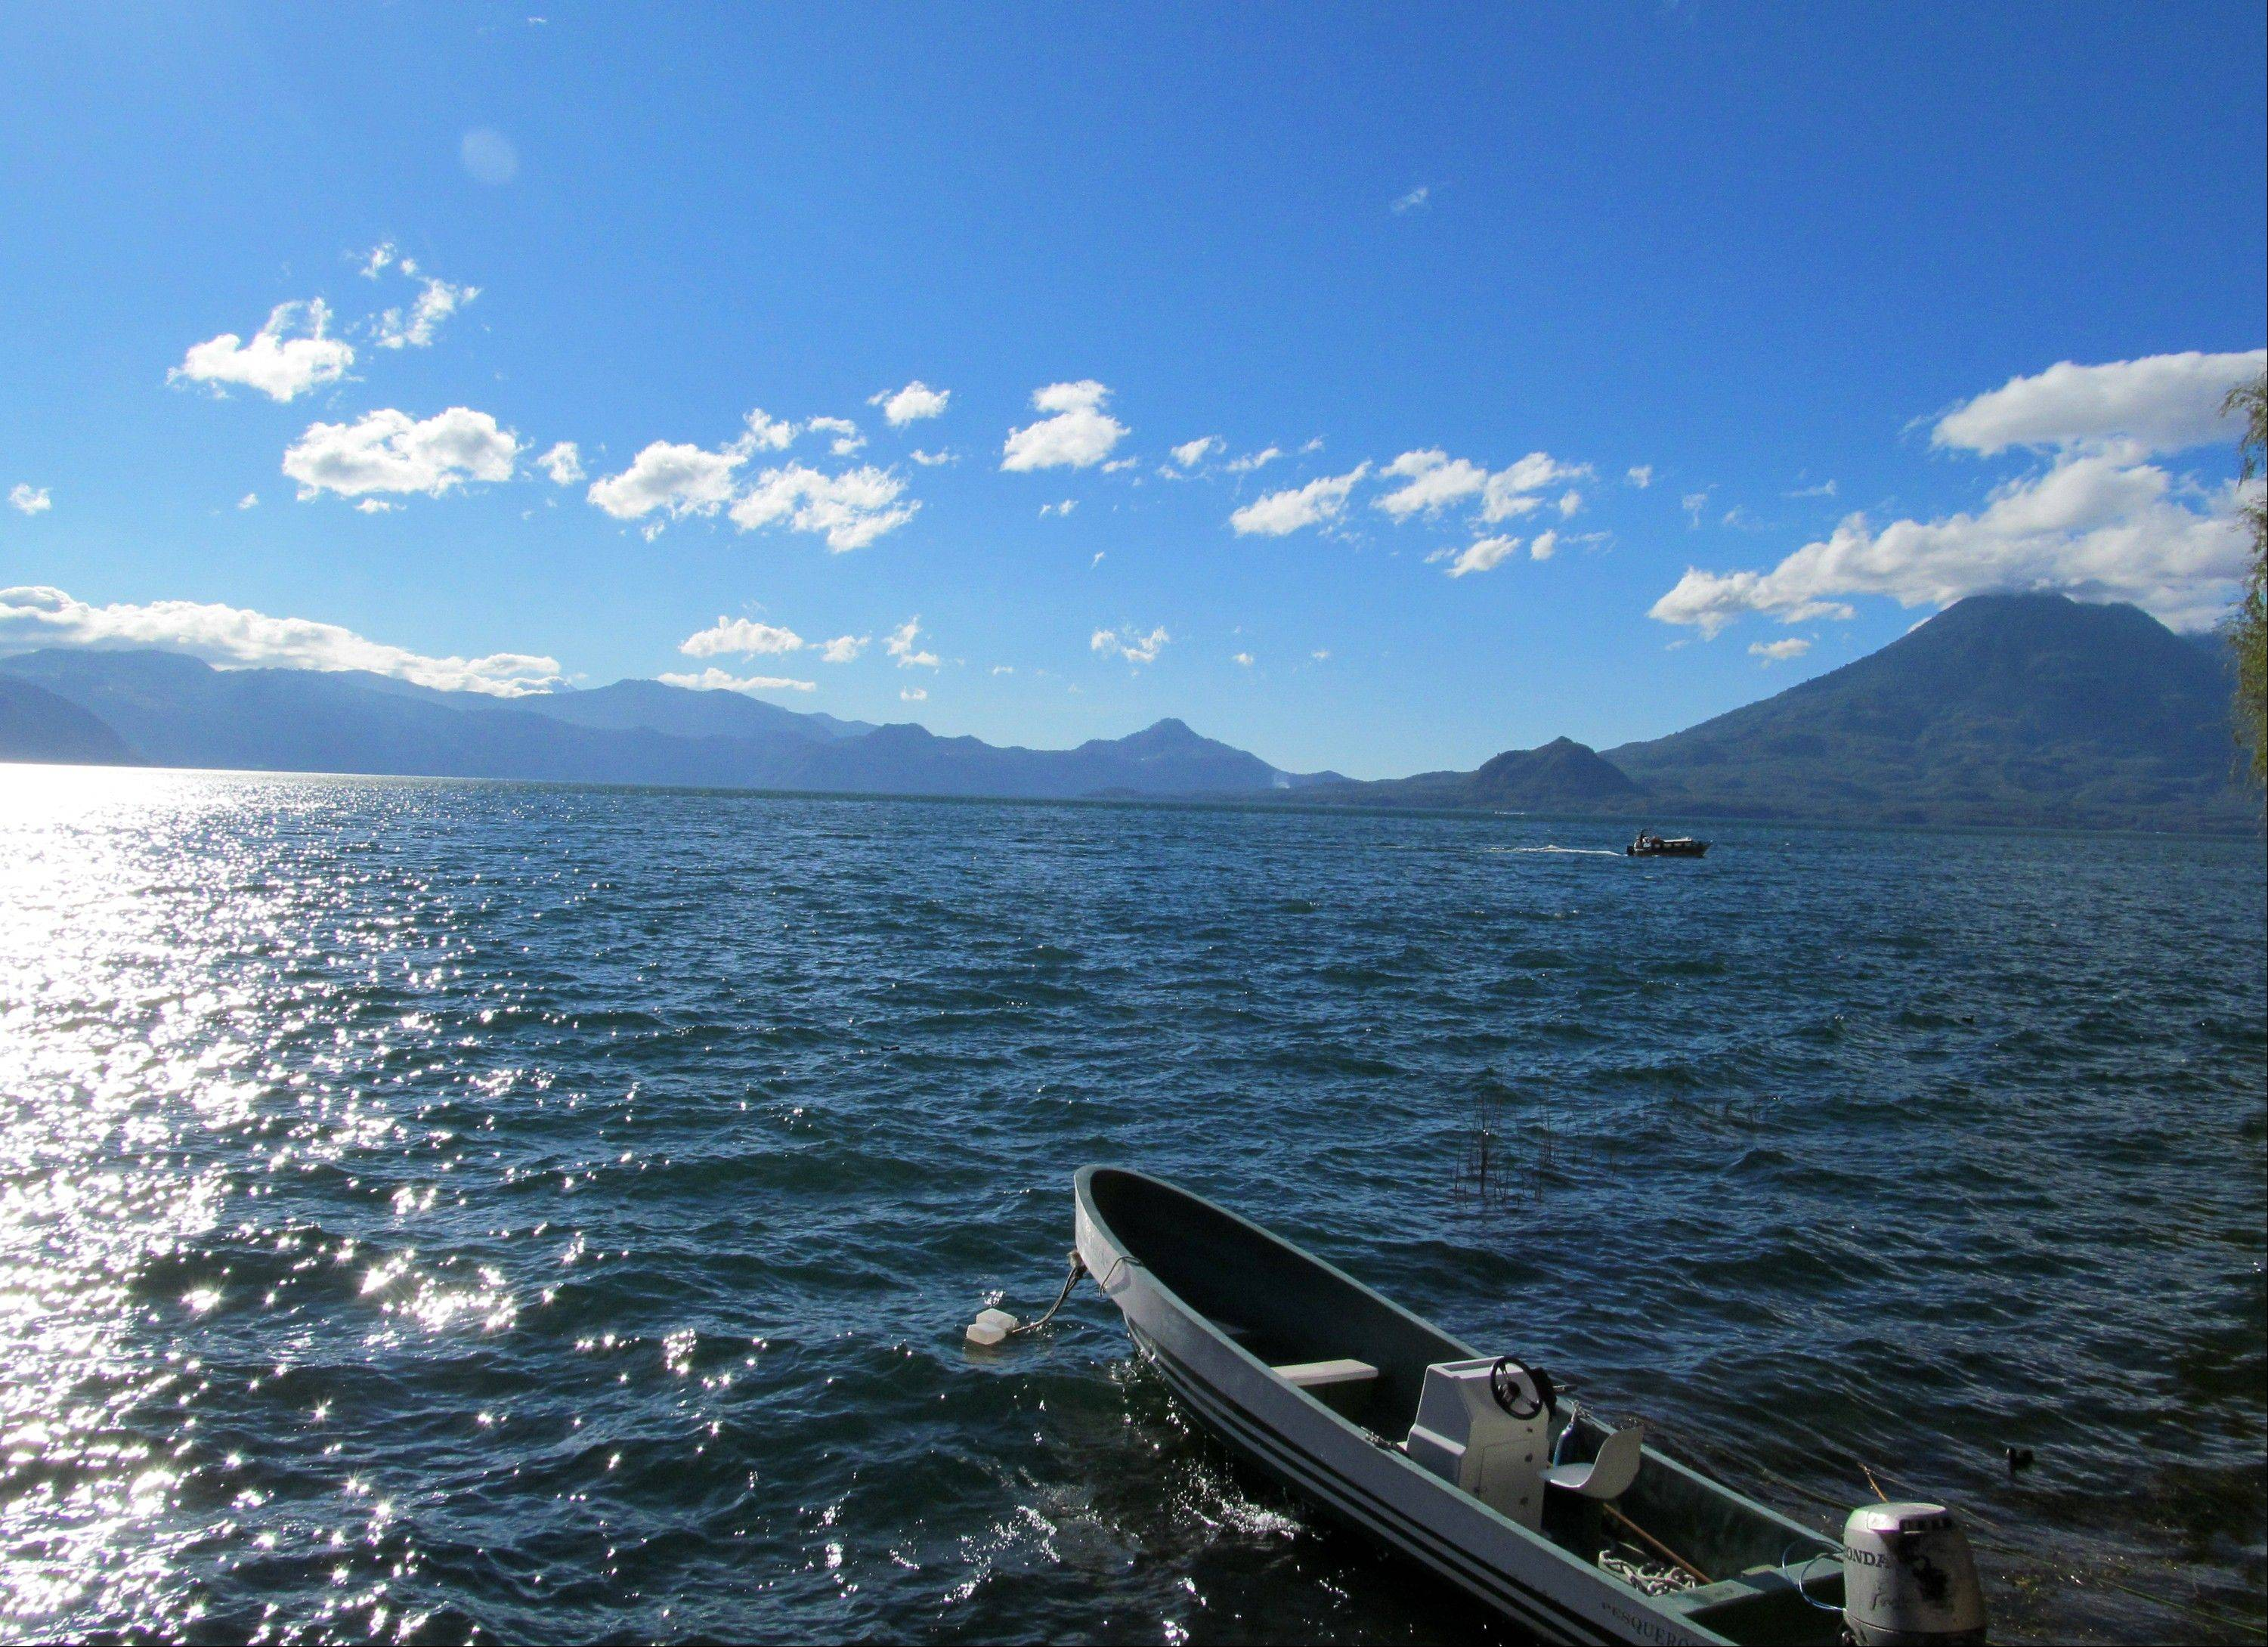 Lake Atitlan, in Guatemala's western highlands, is surrounded by volcanoes Tomilan and Atitlan.